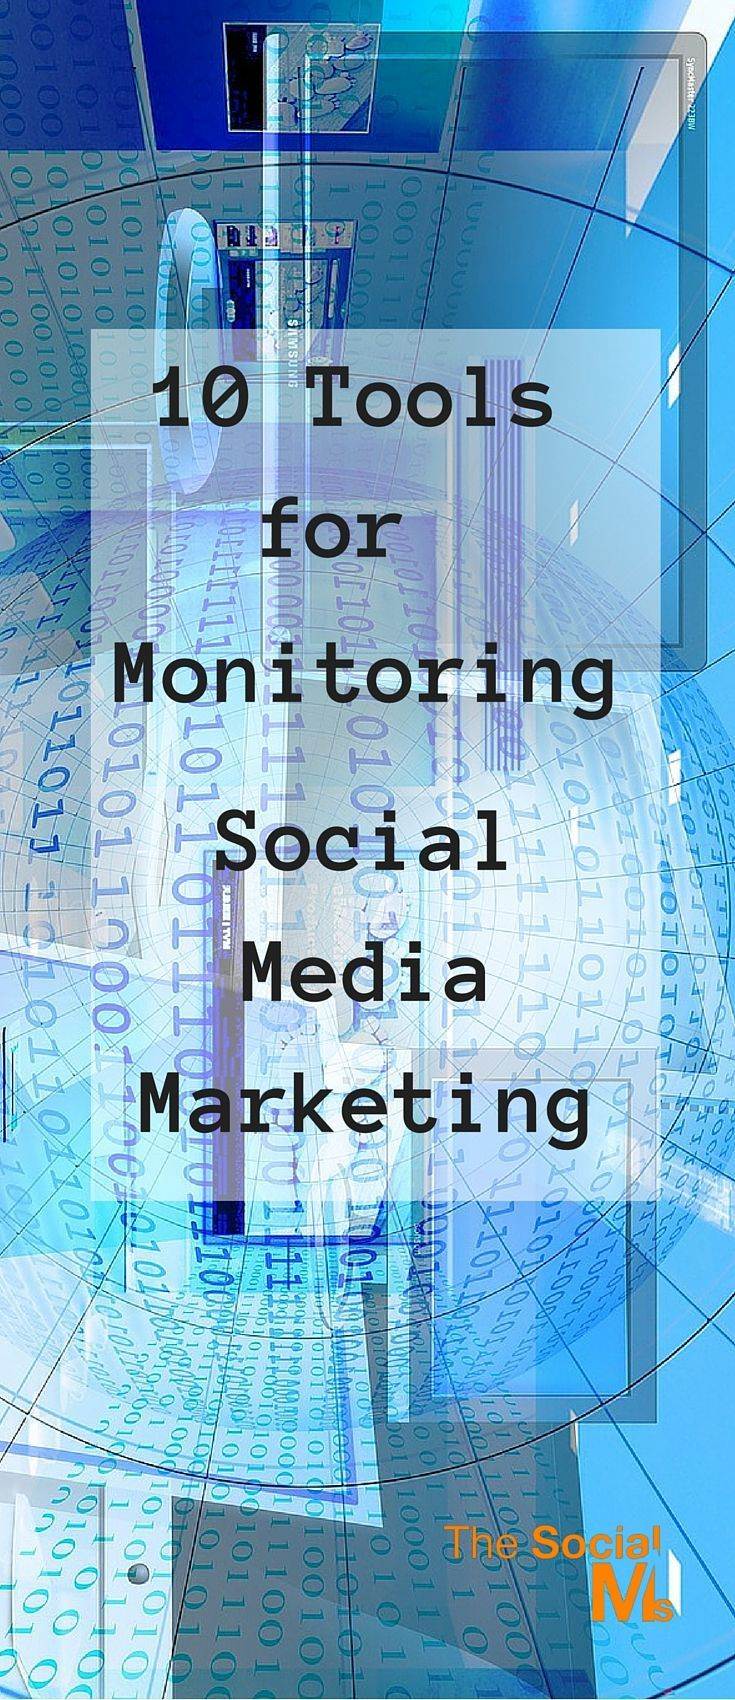 10 Tools for Monitoring Social Media Marketing